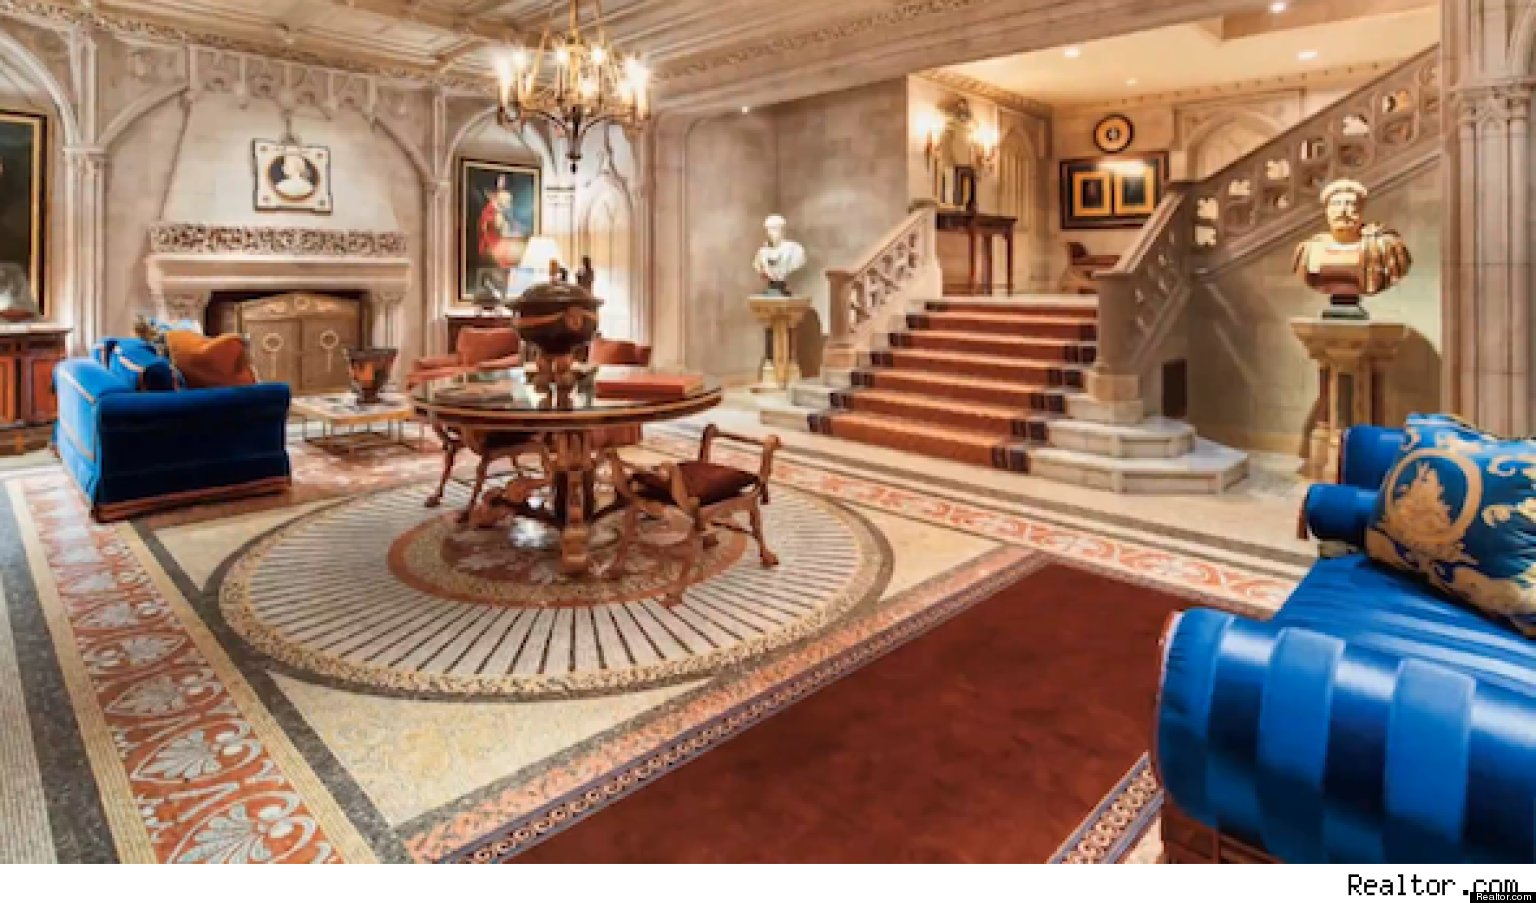 Top 9 Most Expensive Homes In Denver In 2012 According To